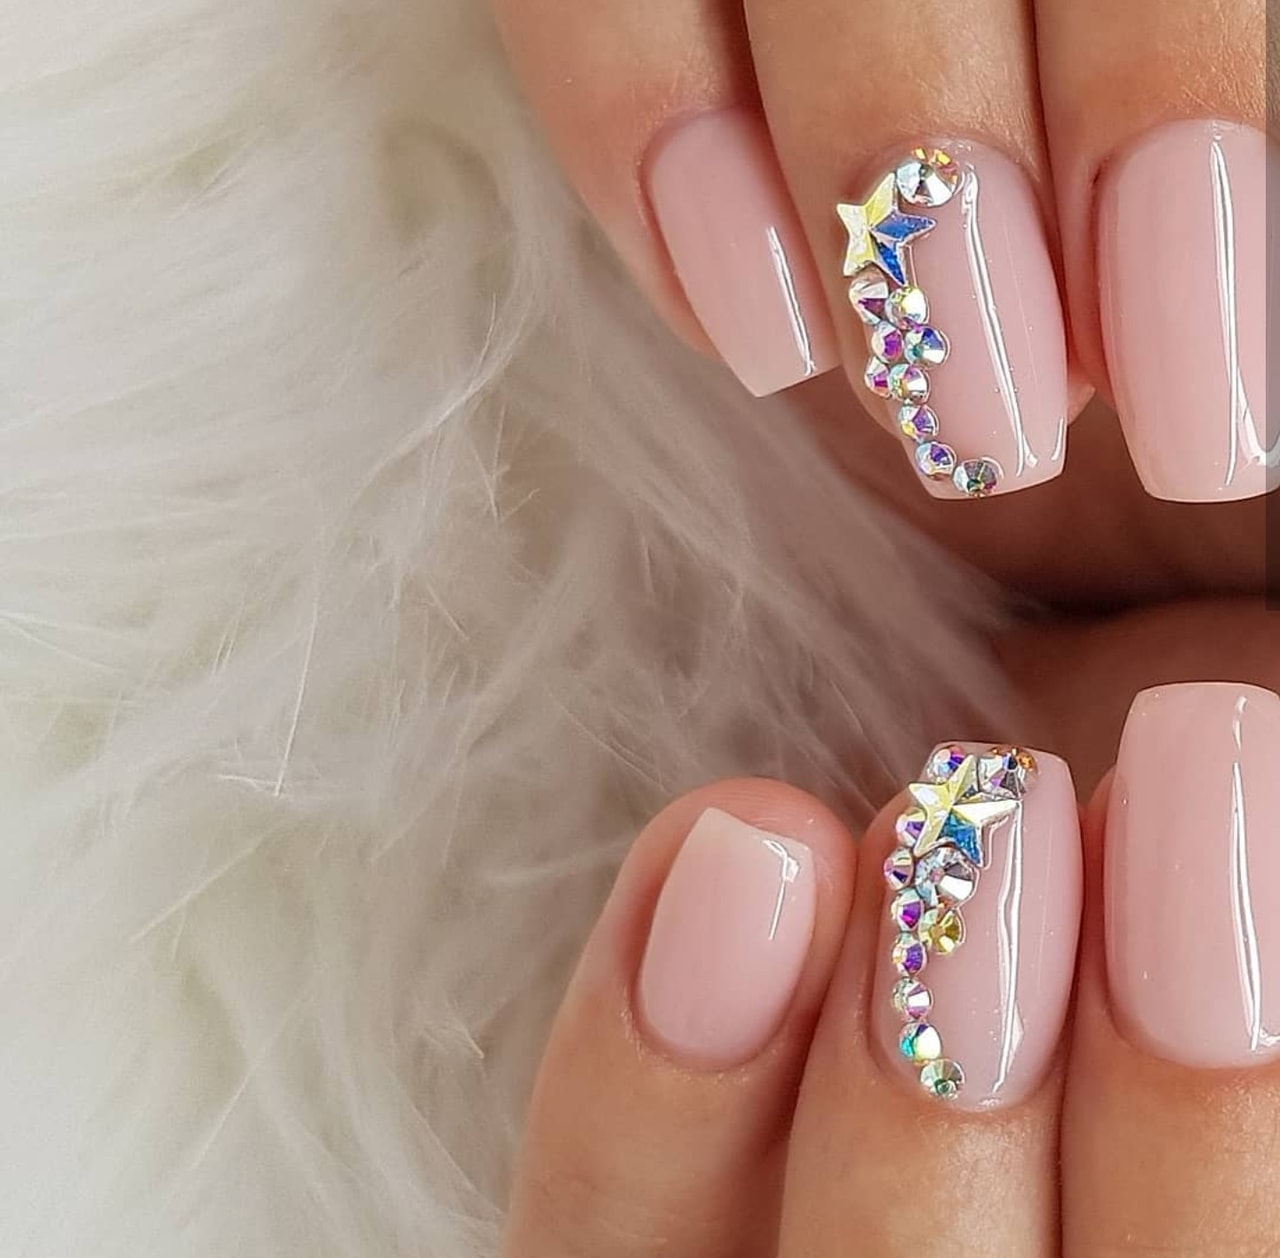 Stylish Nail Art Design And Manicure Image 6053160 On Favim Com